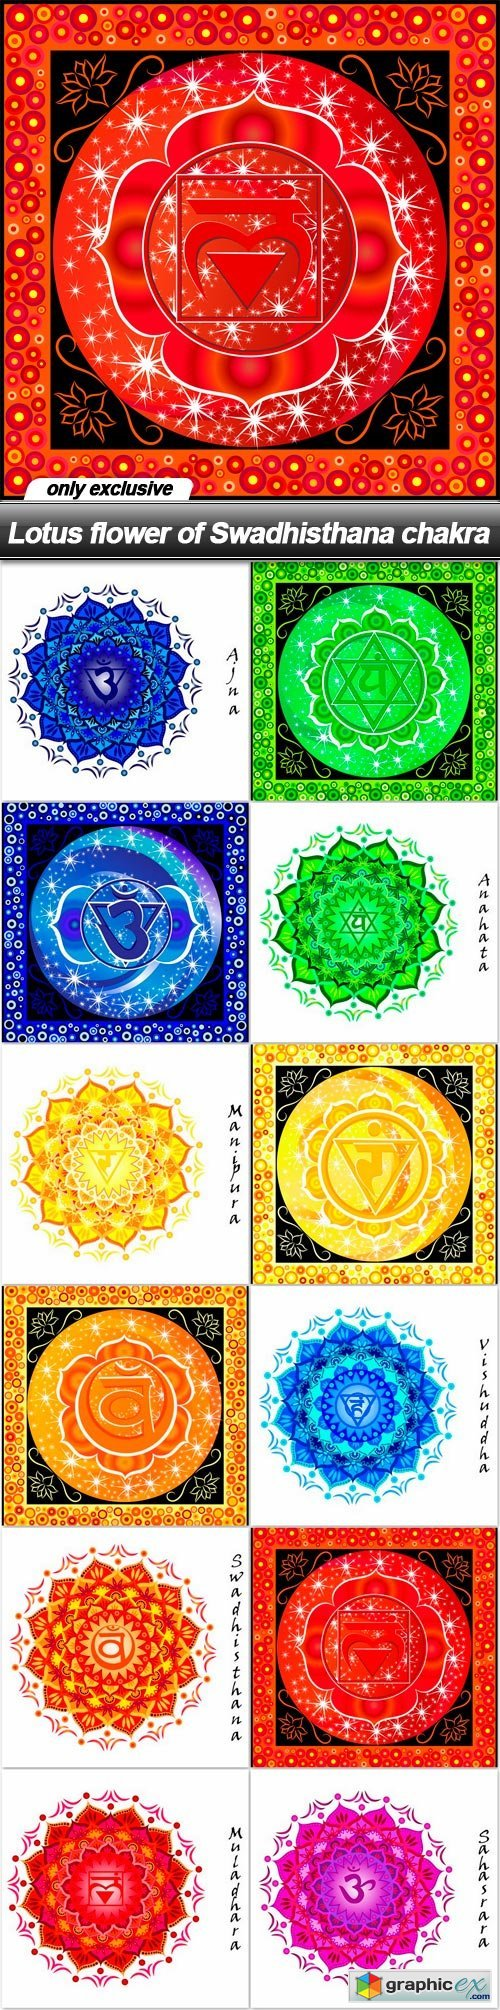 Lotus flower of swadhisthana chakra 12 eps free download vector lotus flower of swadhisthana chakra 12 eps izmirmasajfo